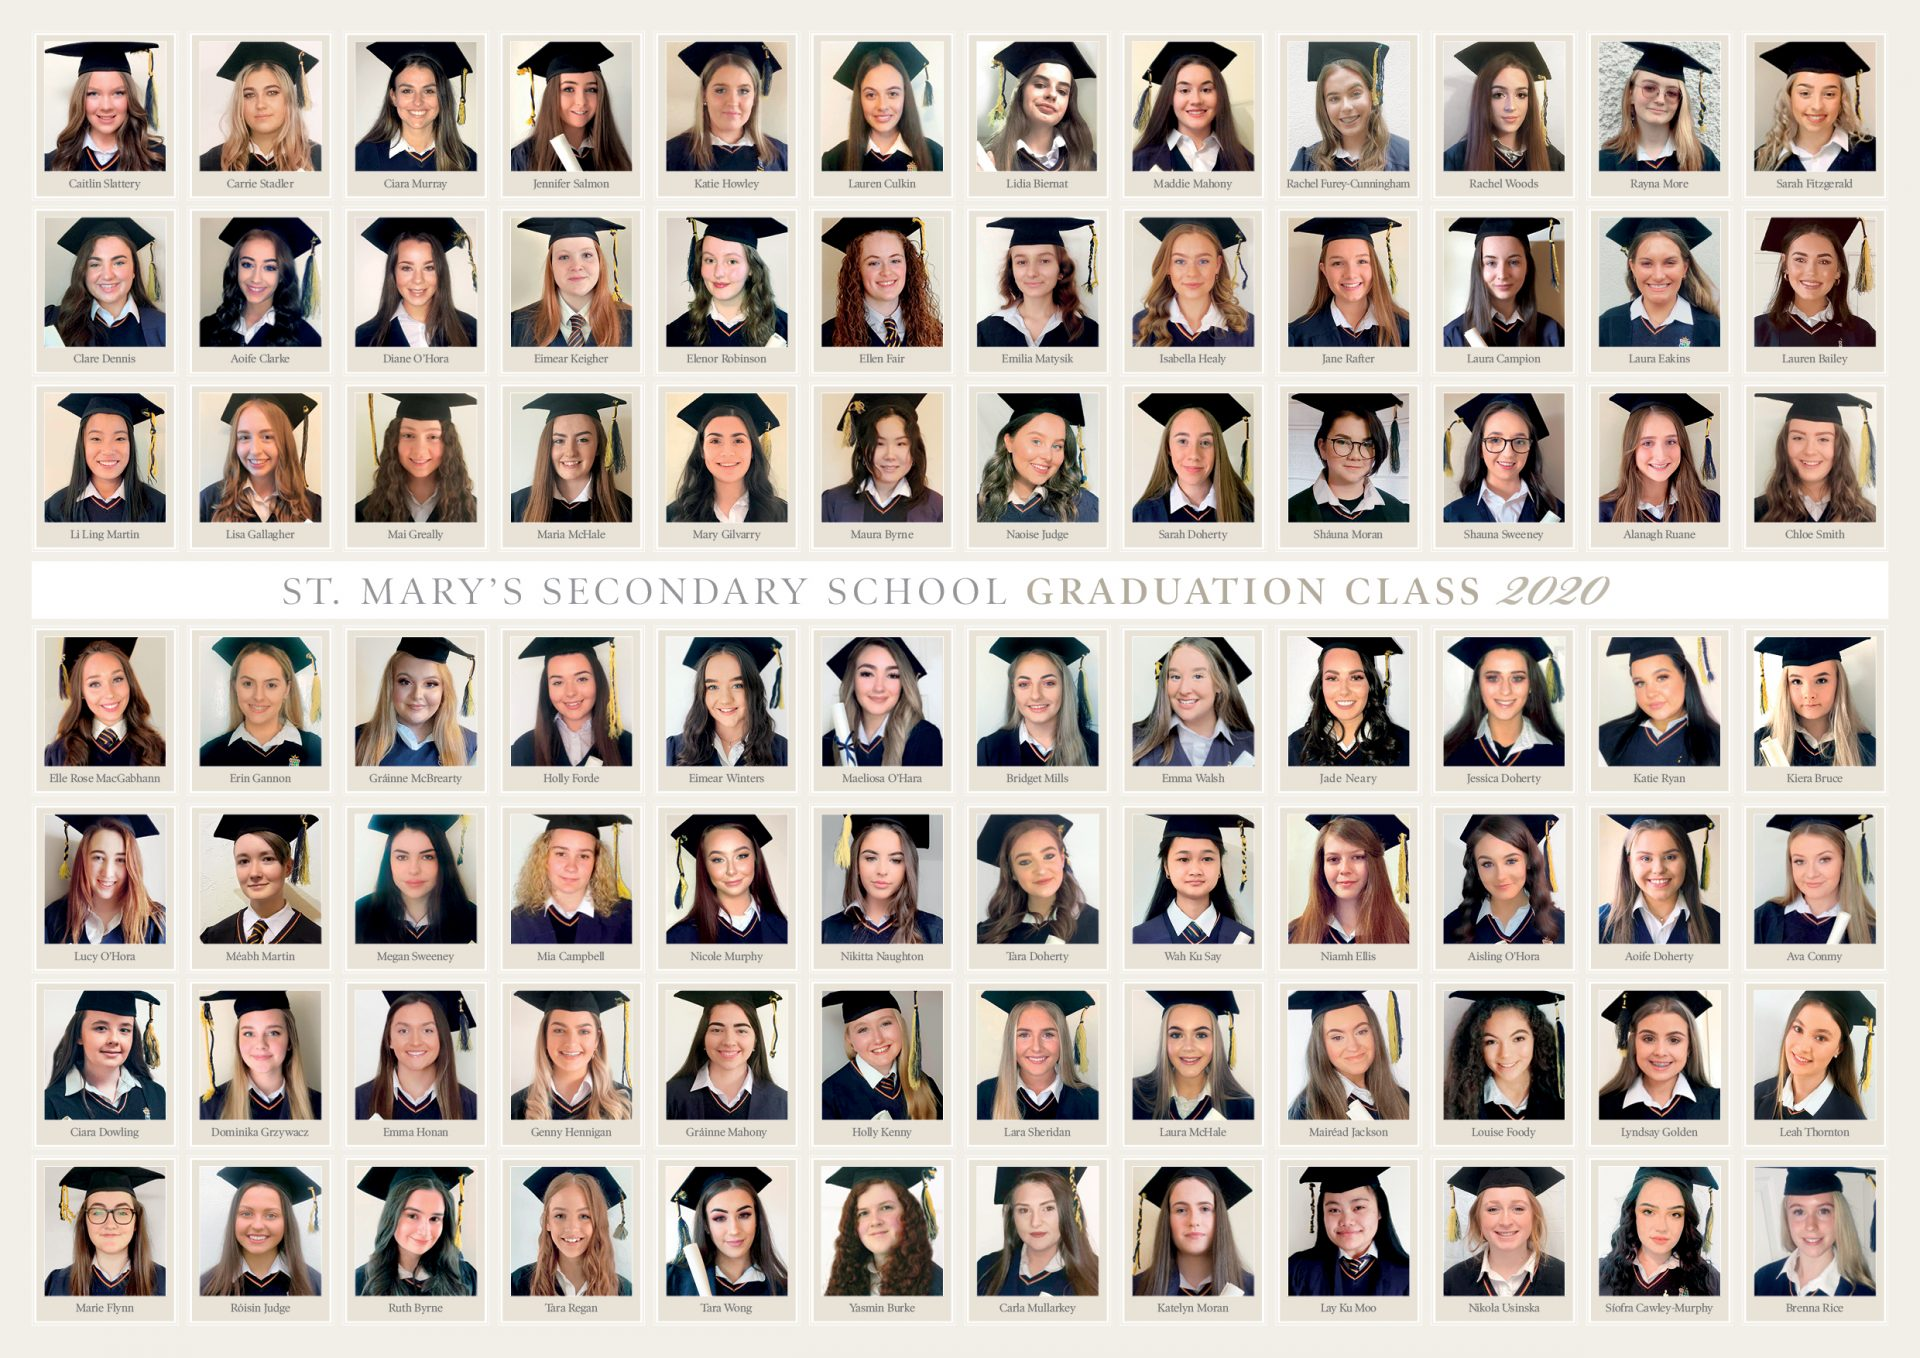 2020 grad pic by St Mary's SS in Ballina